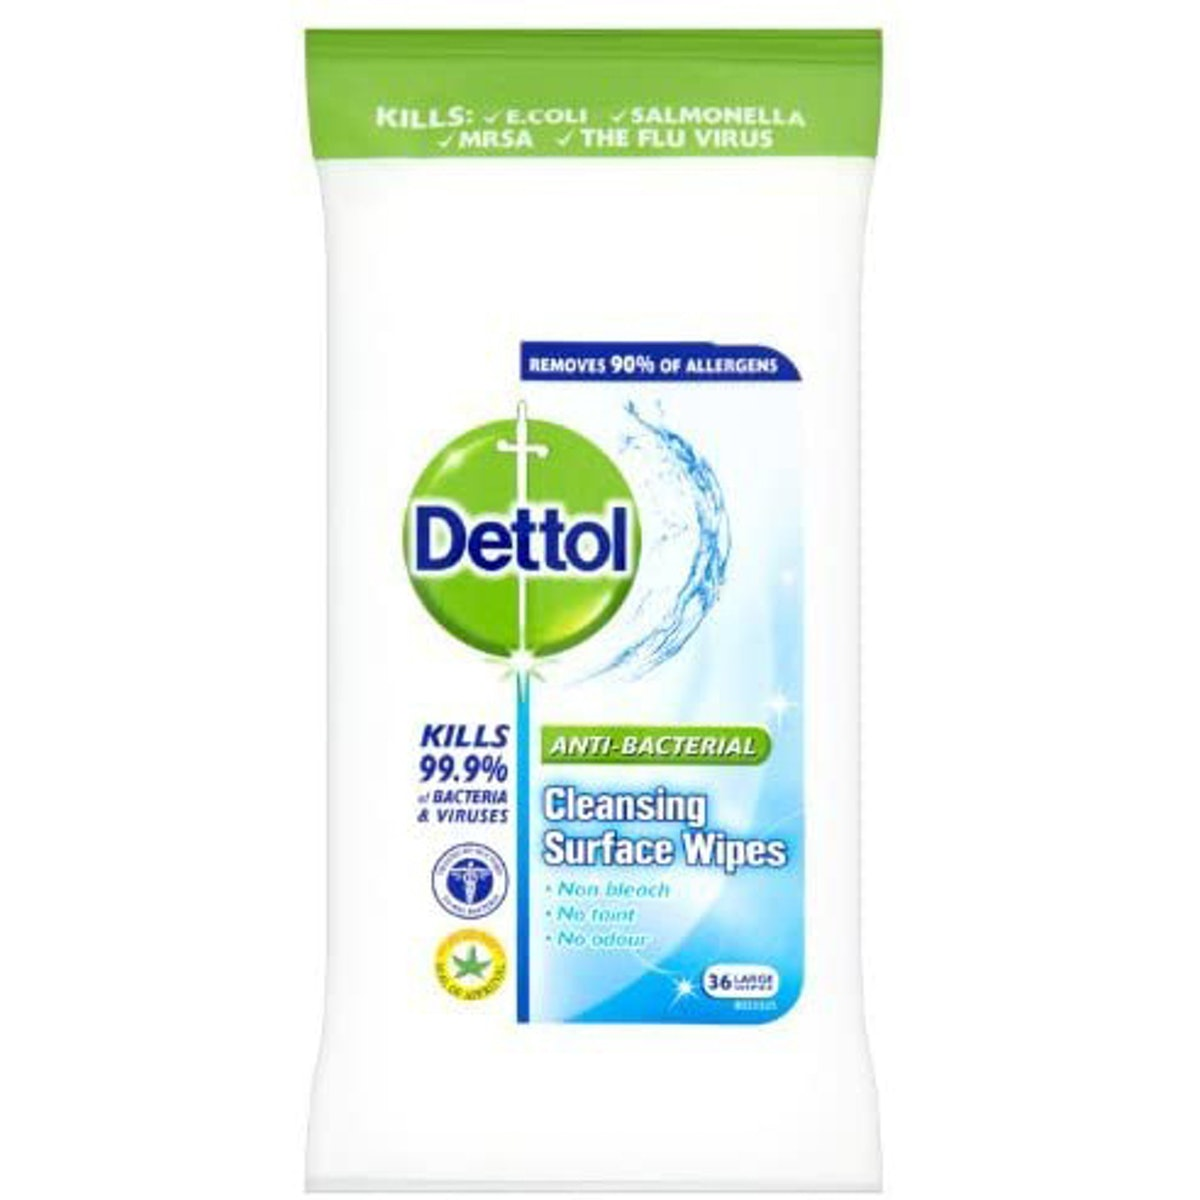 A packet of Dettol wipes